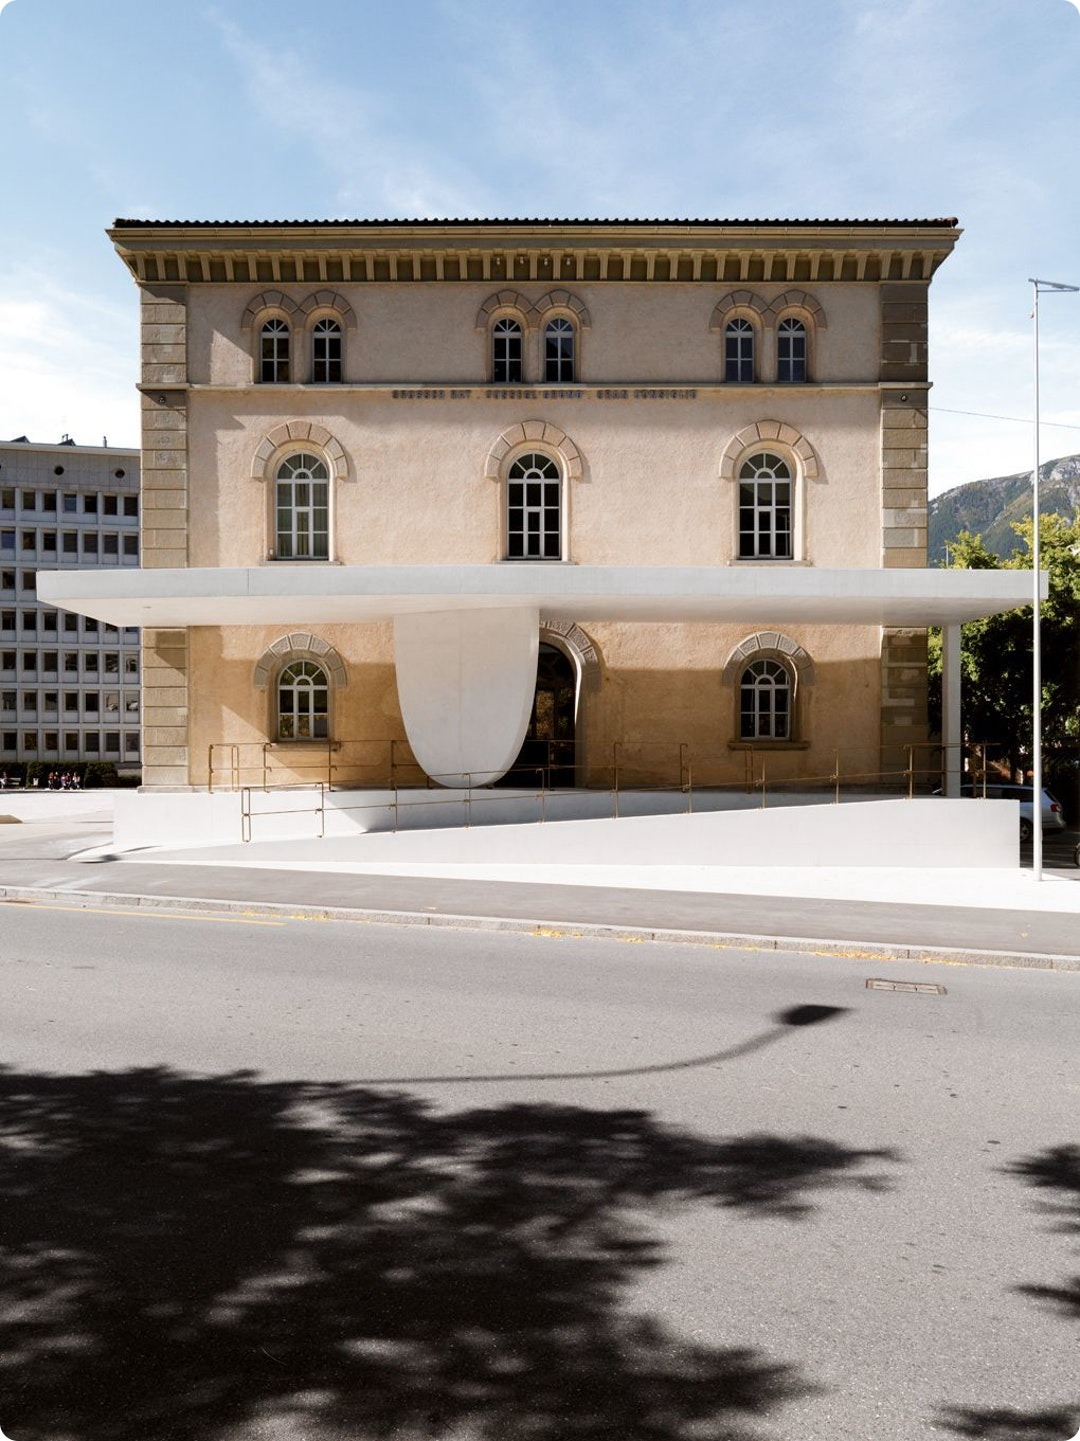 Entrance of the Grisons Parliament by Valerio Olgiati